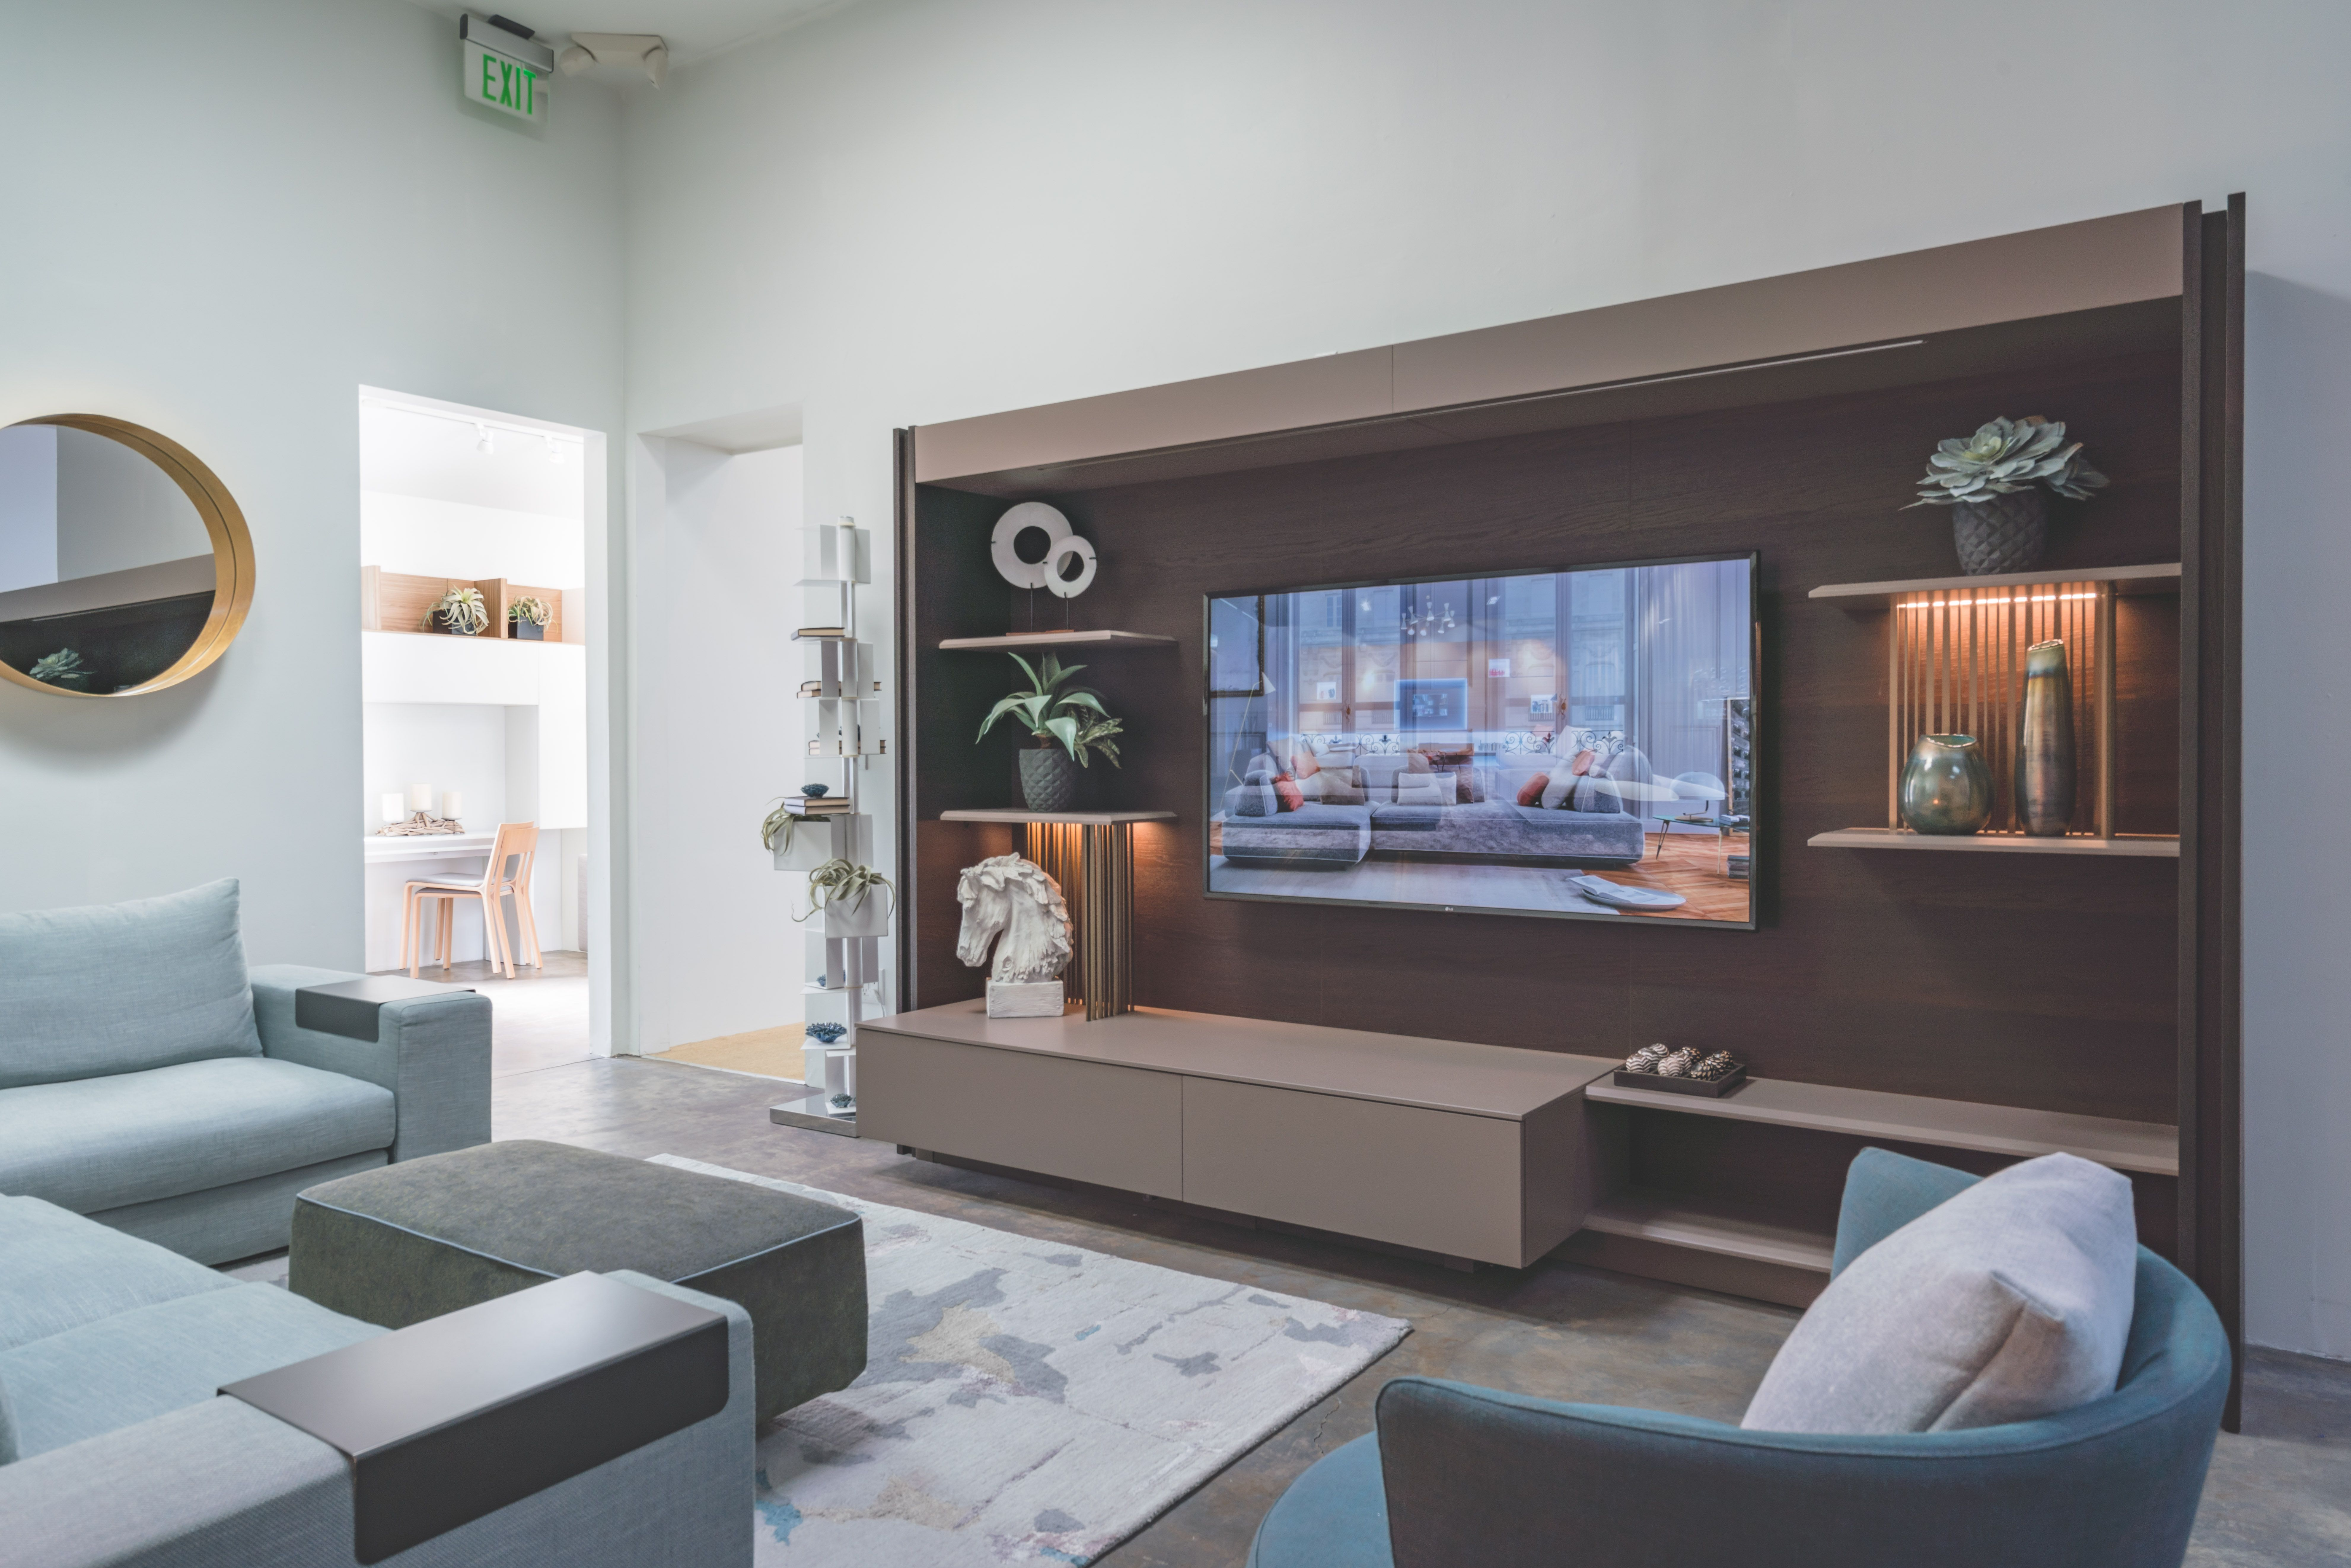 Triplo Cinema Is A State Of The Art Shelving And Media Unit With A Big Secret A Cleverly Concealed Larg Resource Furniture Furniture Offers Wall Bed Systems